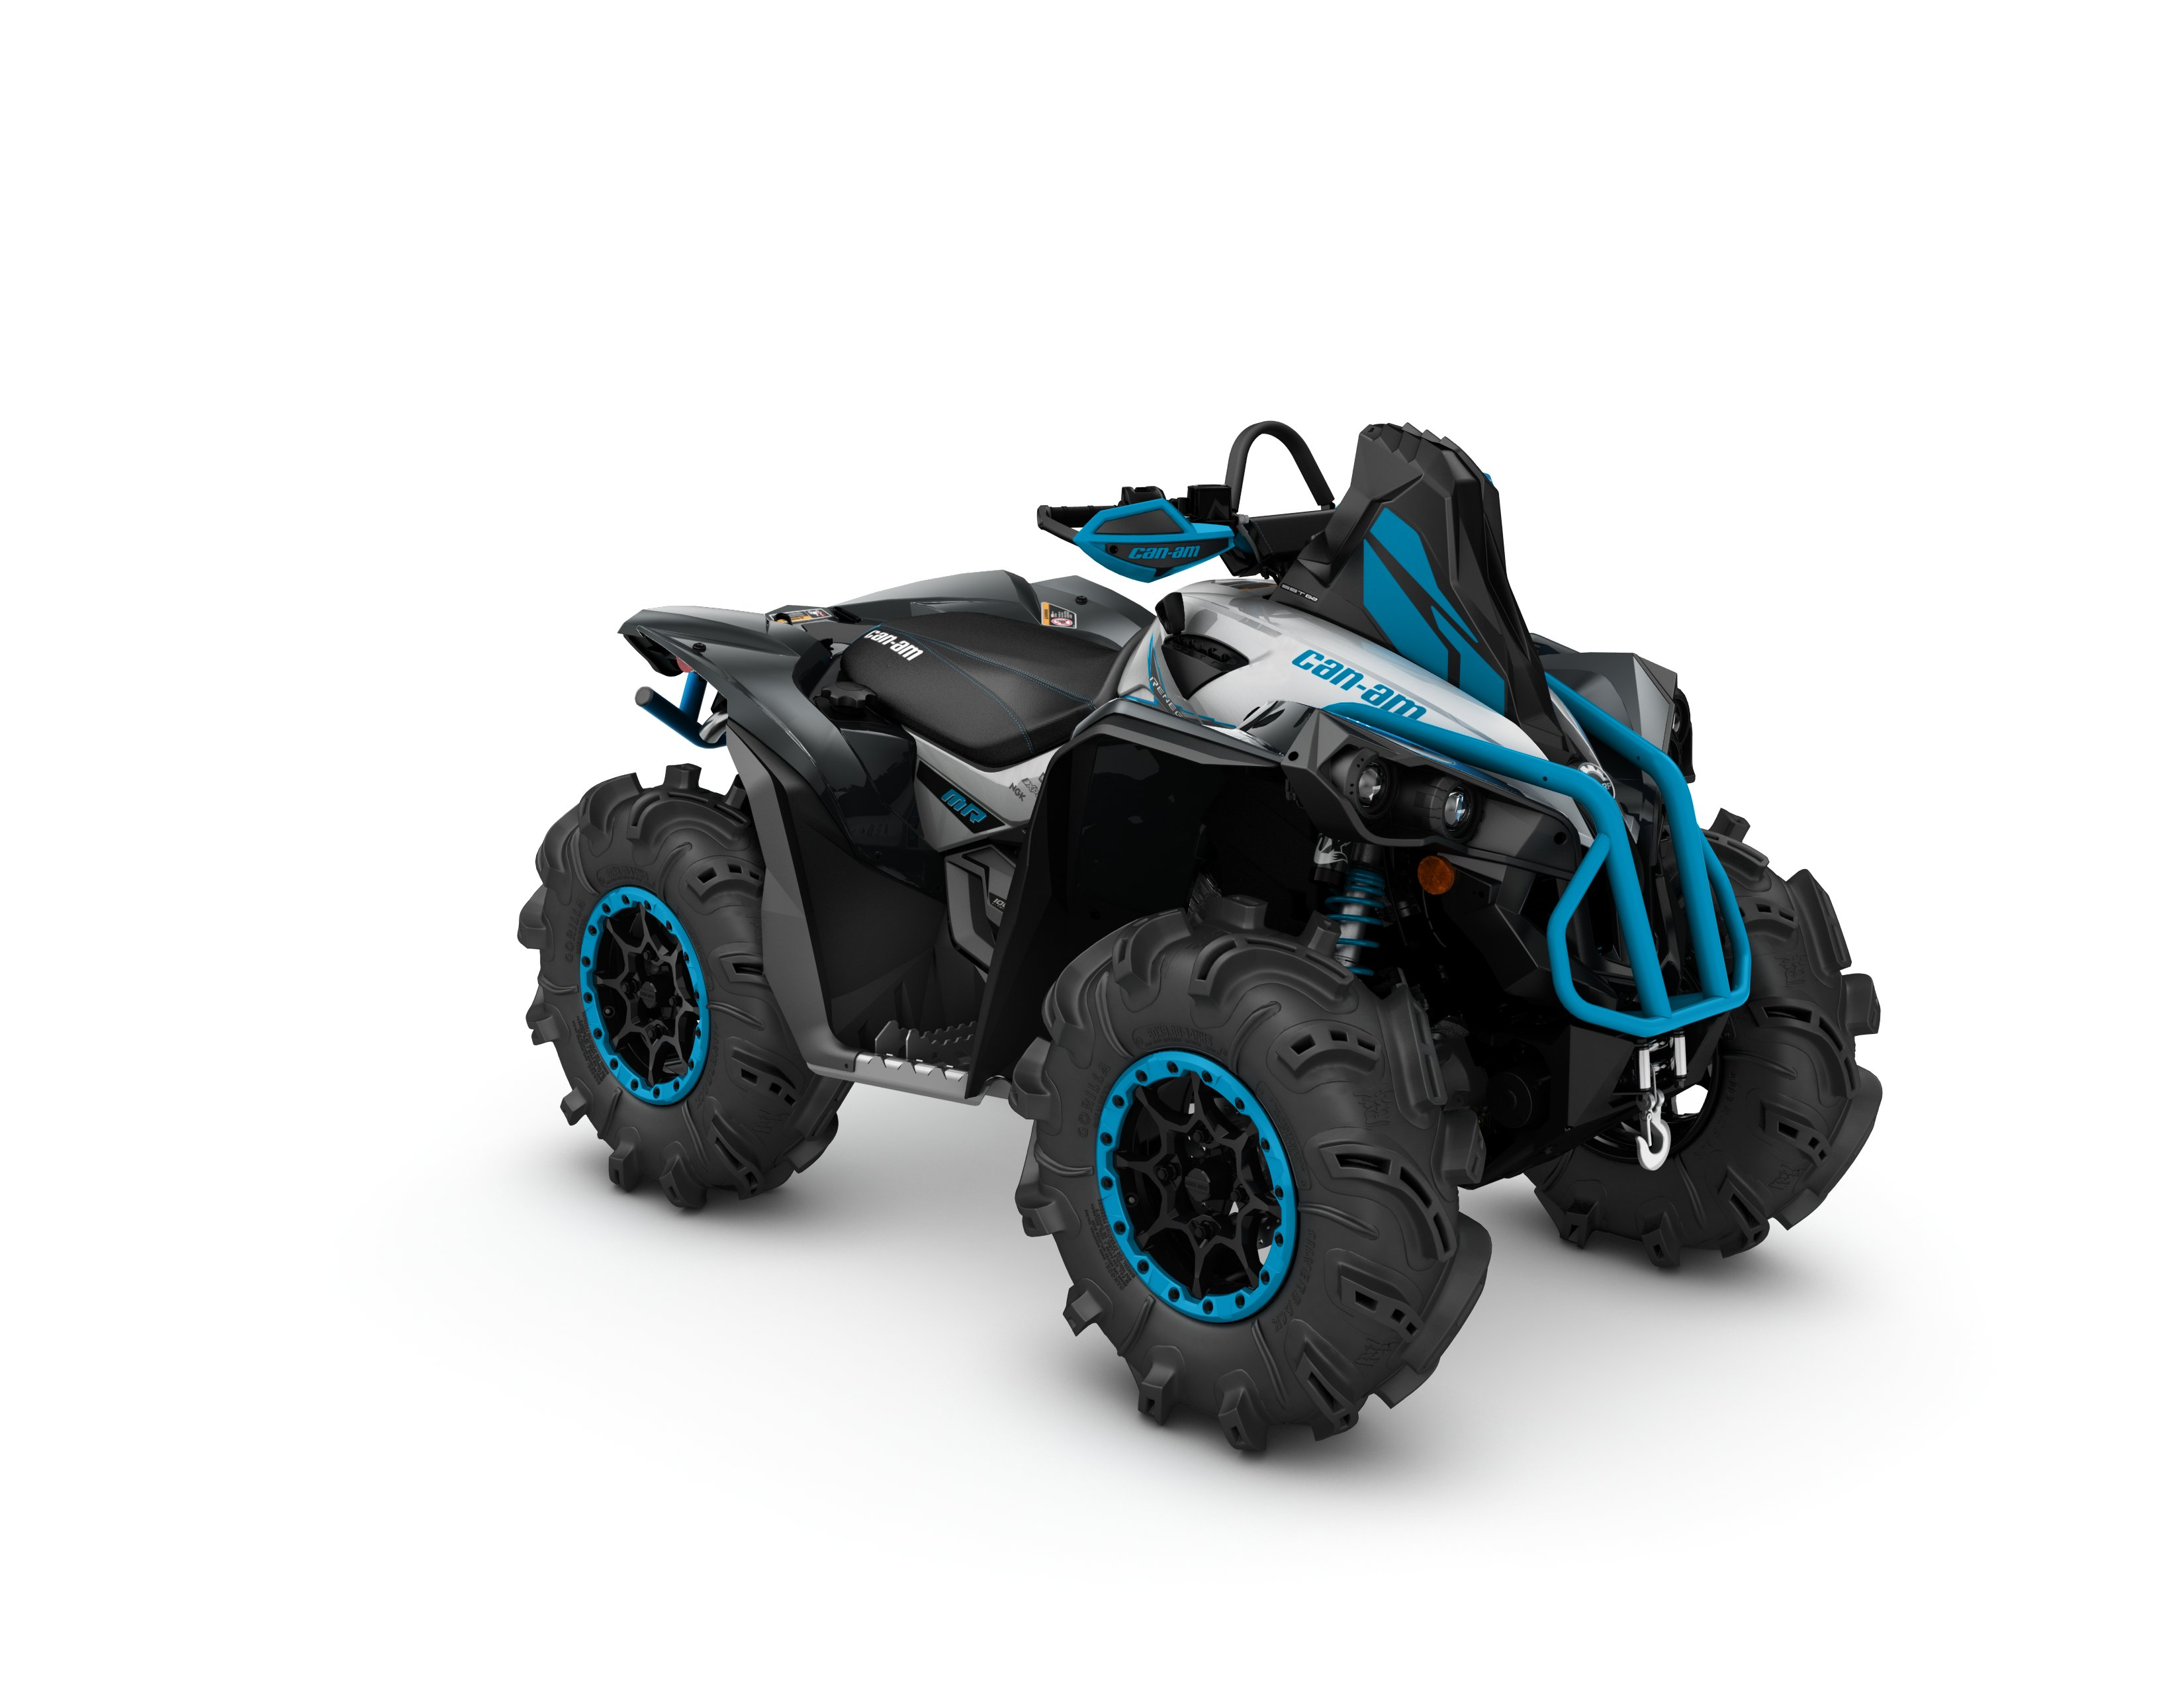 remote control magazine with Can Am Releases New Mud Renegade 1000 And Defender Recute on Rca Rcr 312w Universal Remote Control besides Attachment together with Bad Life Hacks 1632608 Aug2014 also Dish  work Ez Remote Control Setup additionally Data Governance And Security In Enterprise Mobility.